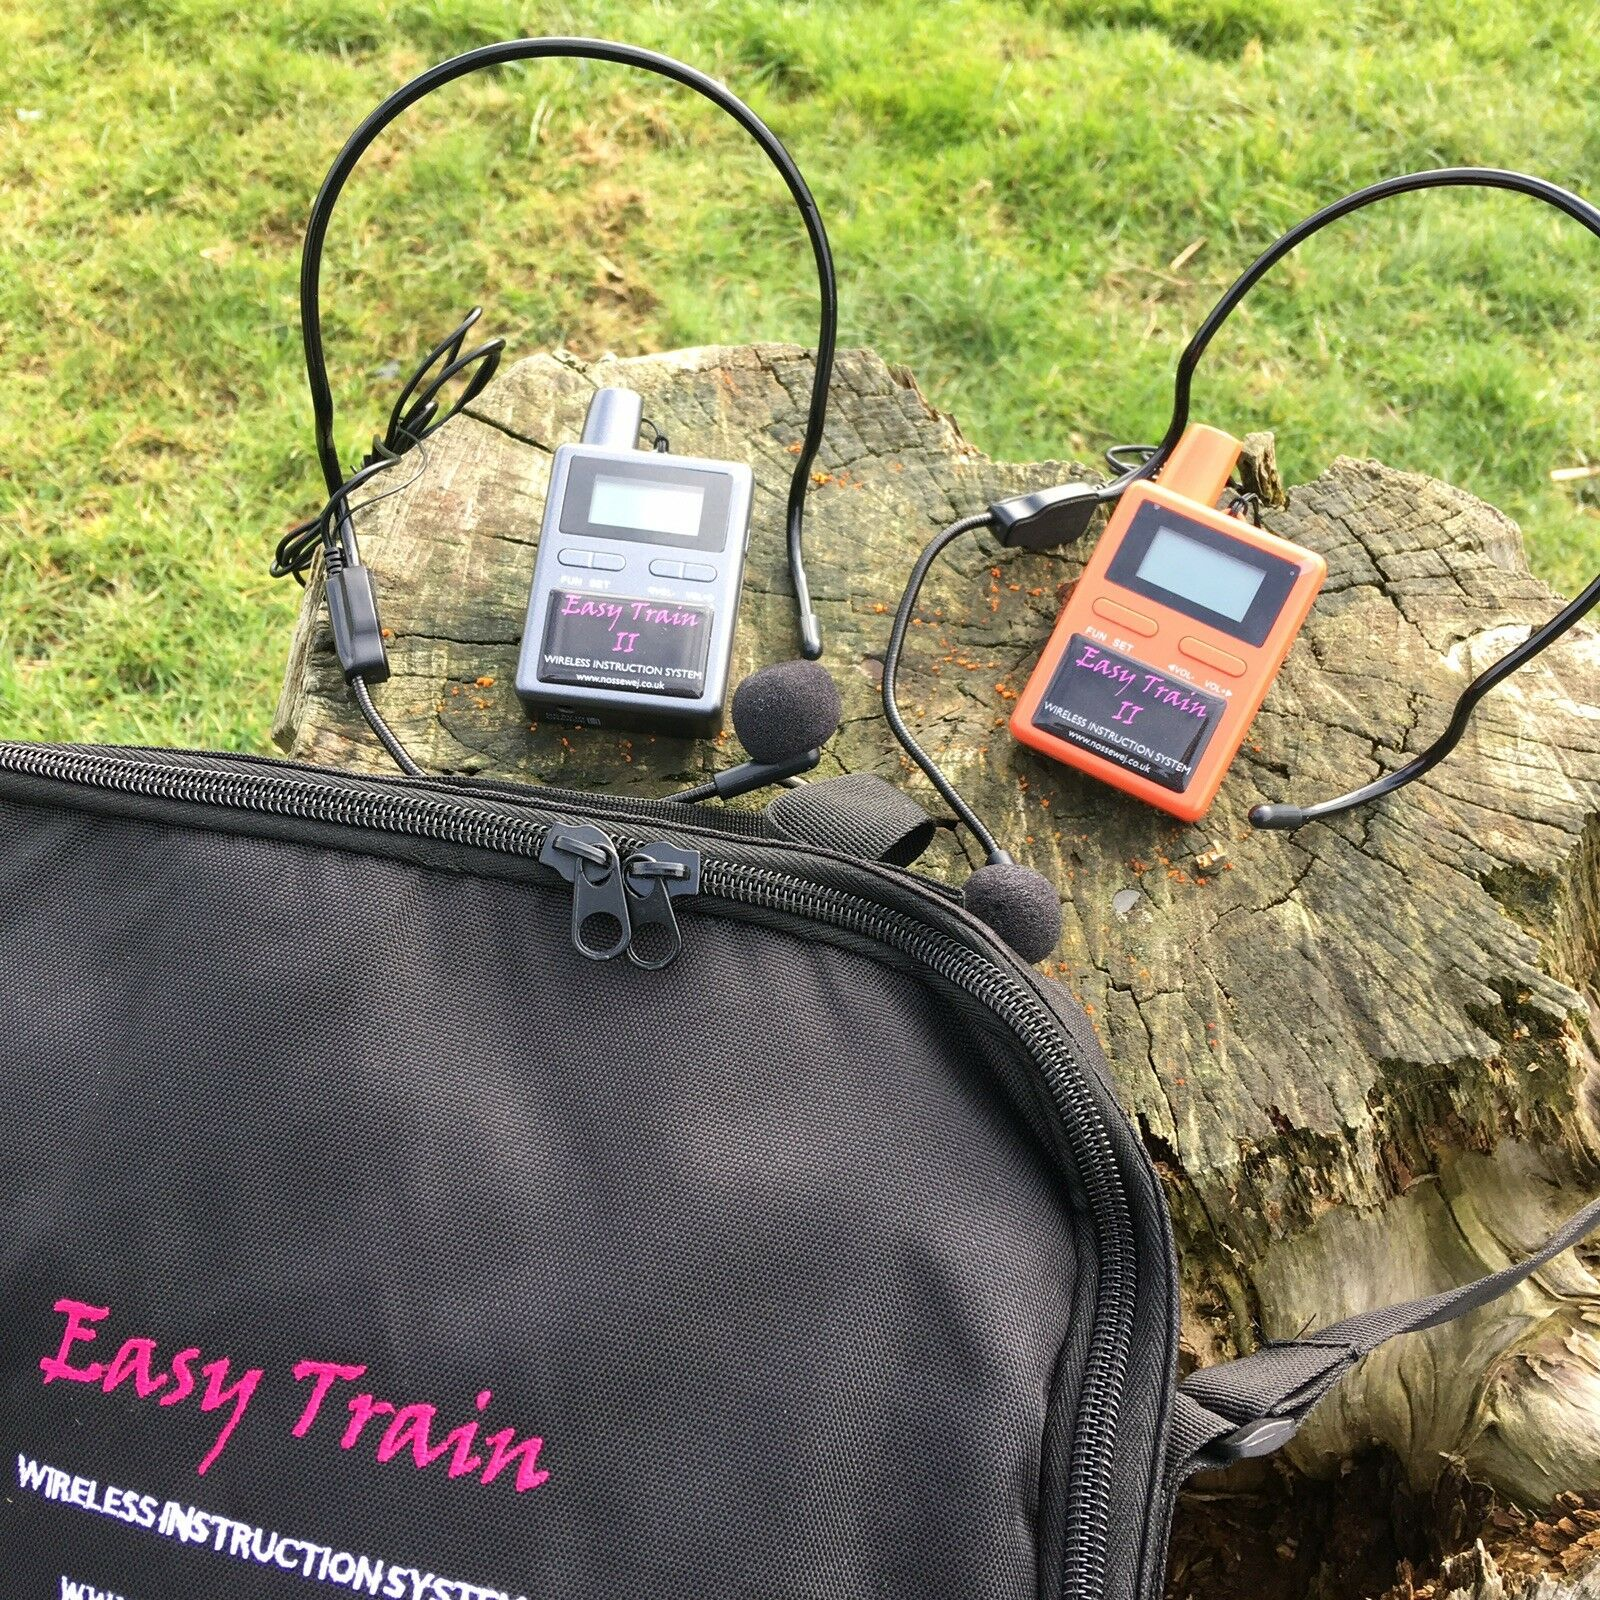 Easy Train Two Way Wireless Communication System Horse Instruction System.